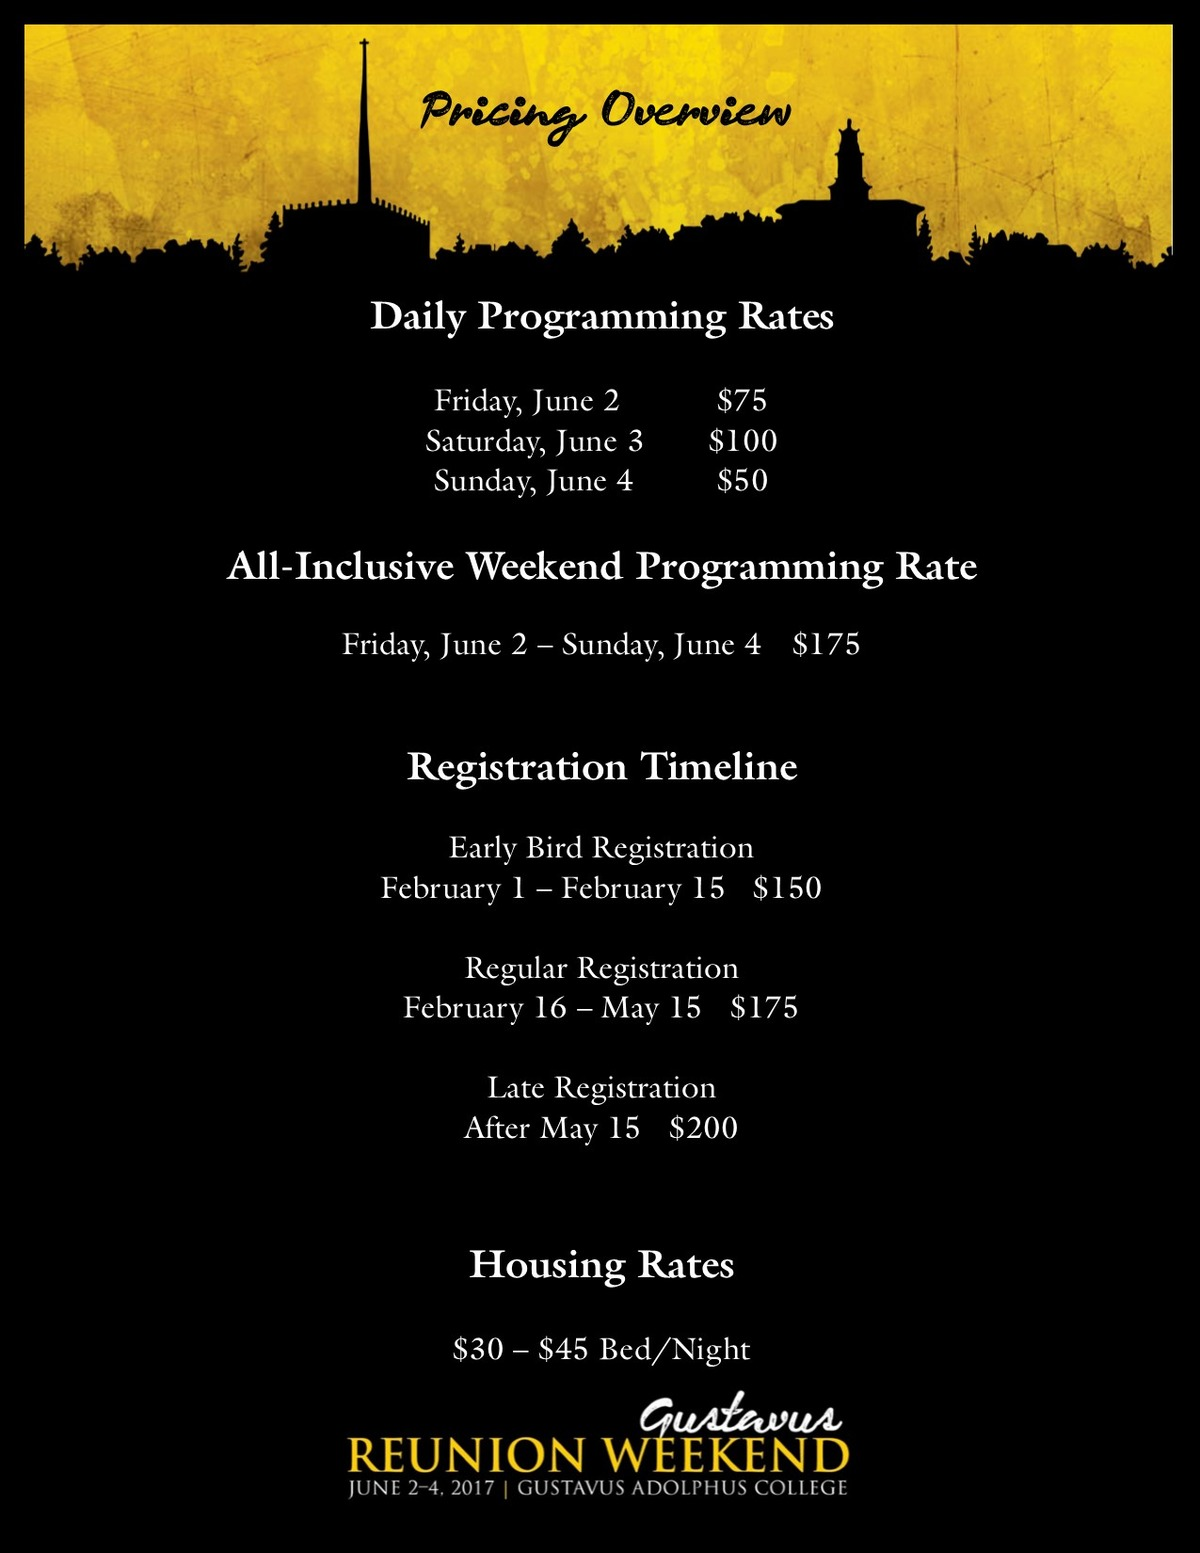 Reunion Weekend 2017 Pricing Overview